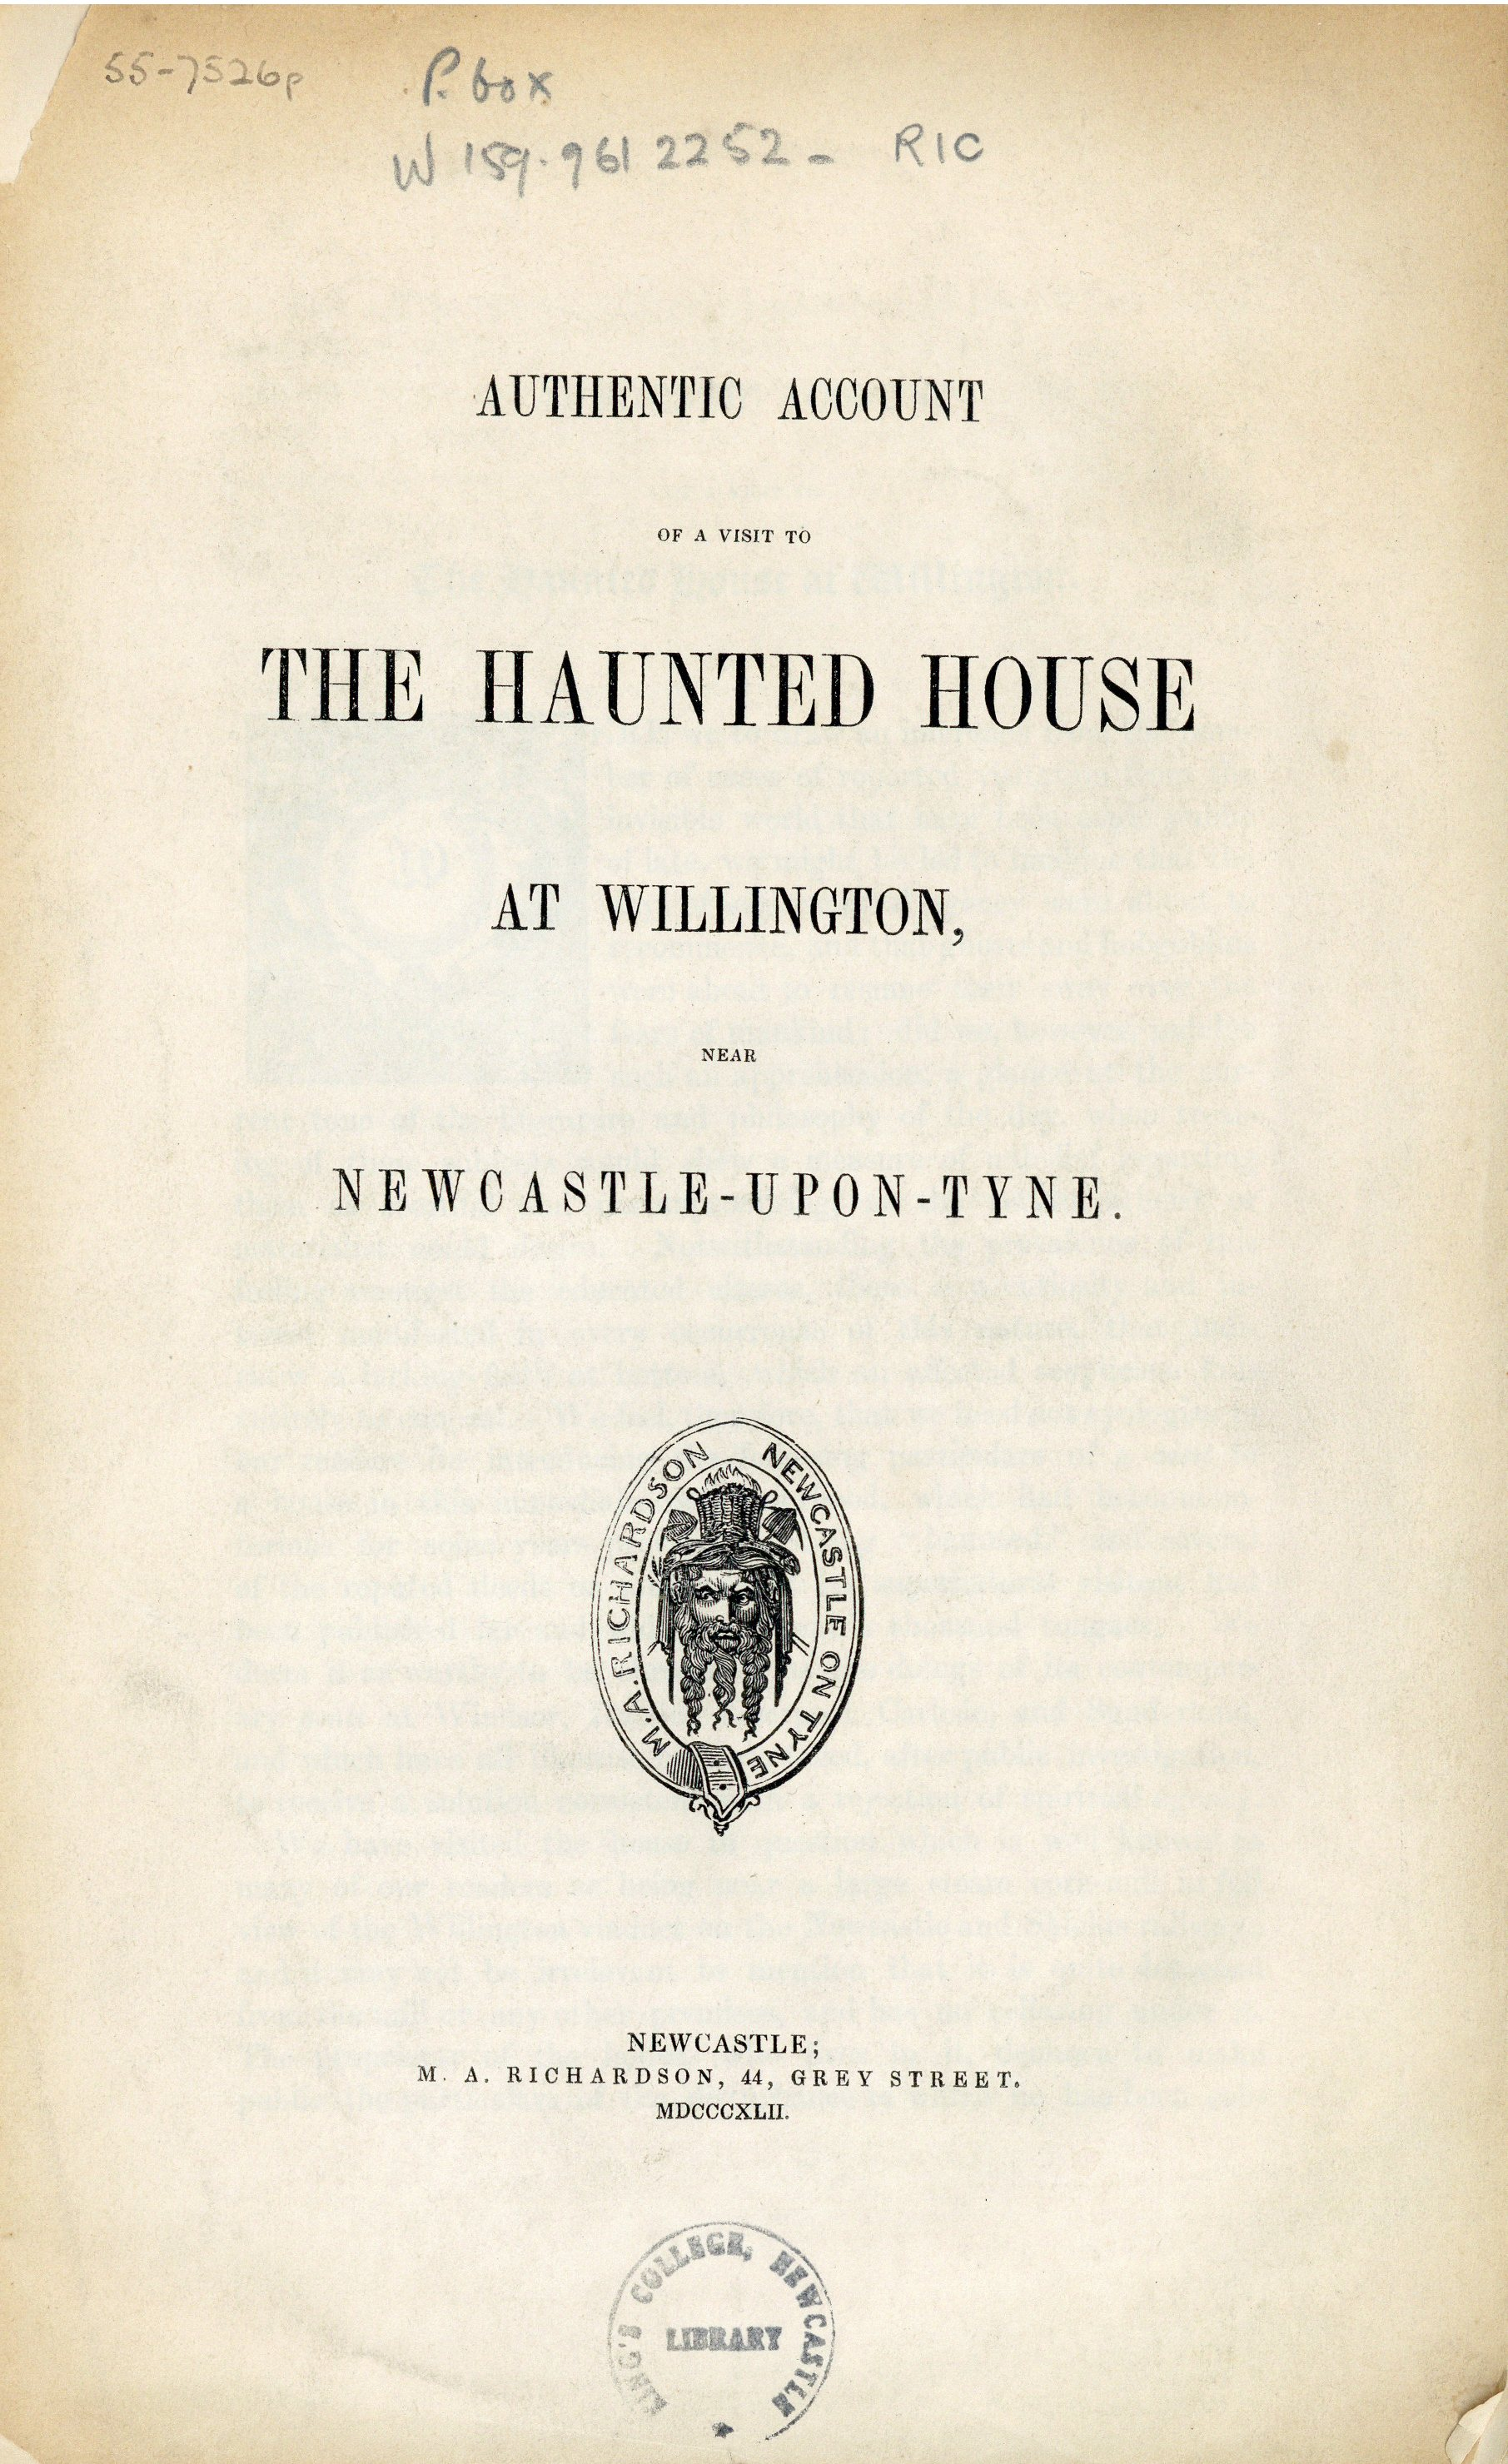 Title page from the 'Authentic account of a visit to the haunted house at Willington near Newcastle-upon-Tyne' (W159.9612252 RIC), published 1842